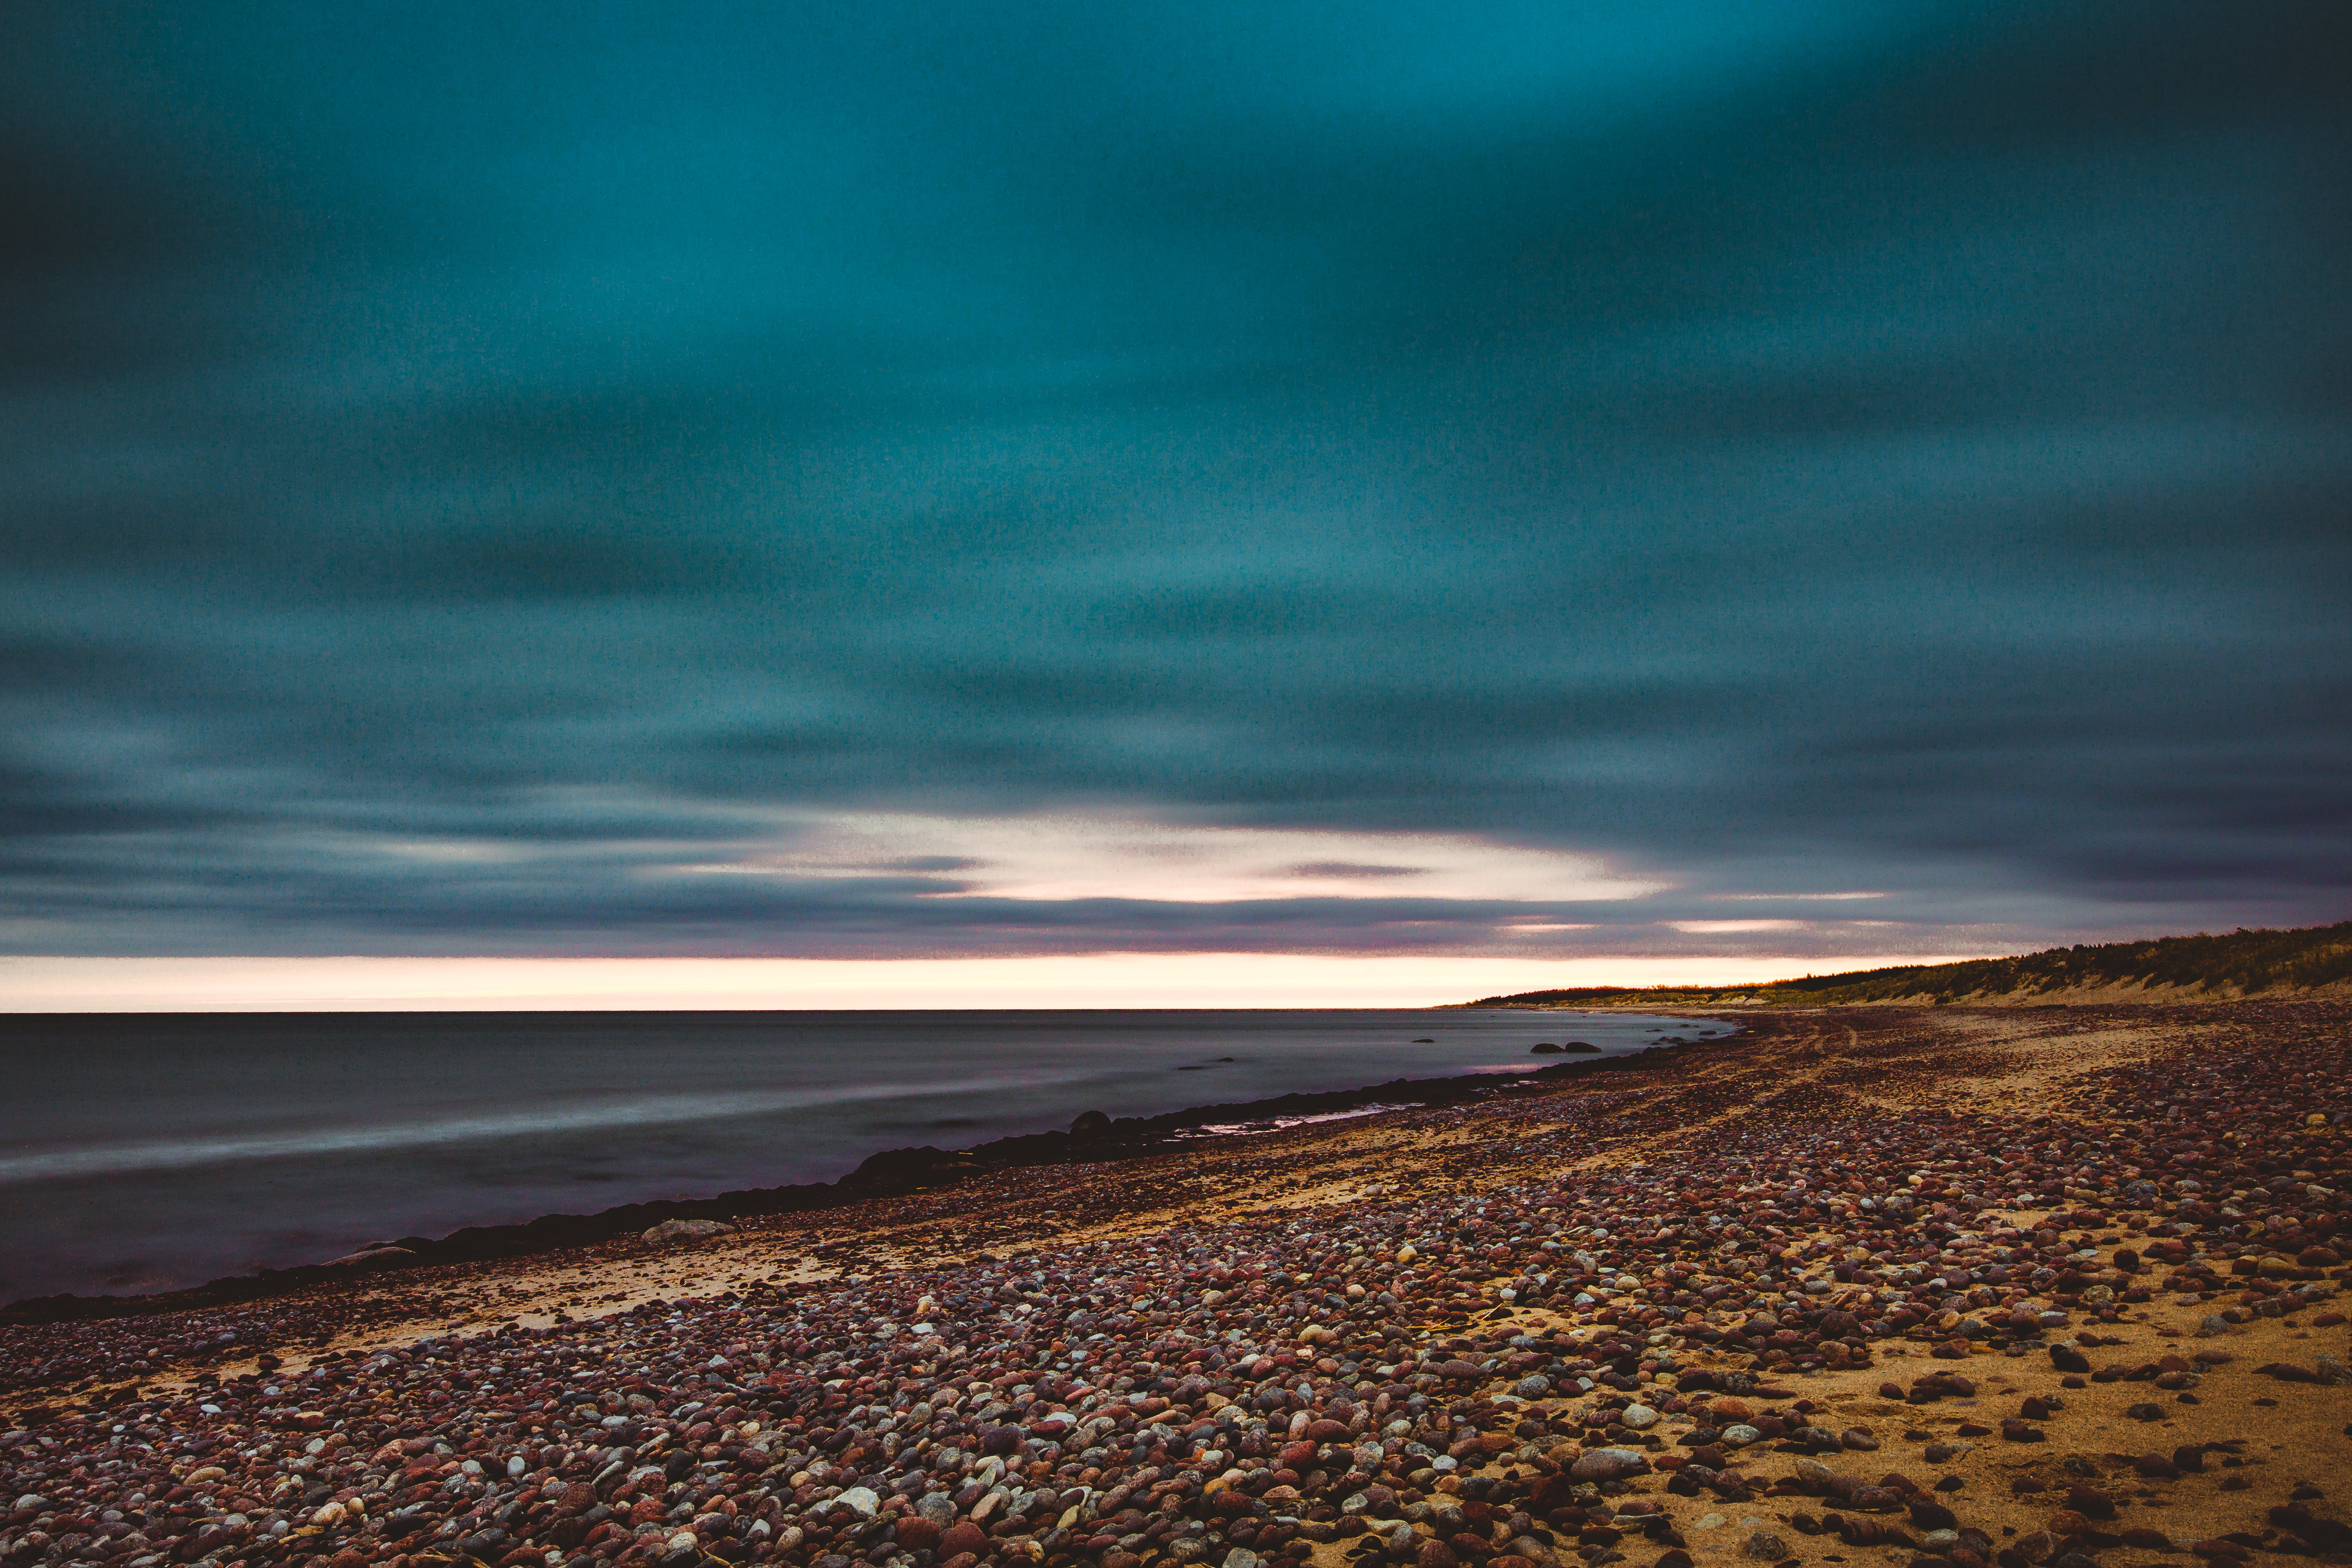 Free stock photo of Baltic Sea, blue water, calm waters, cloudy sky